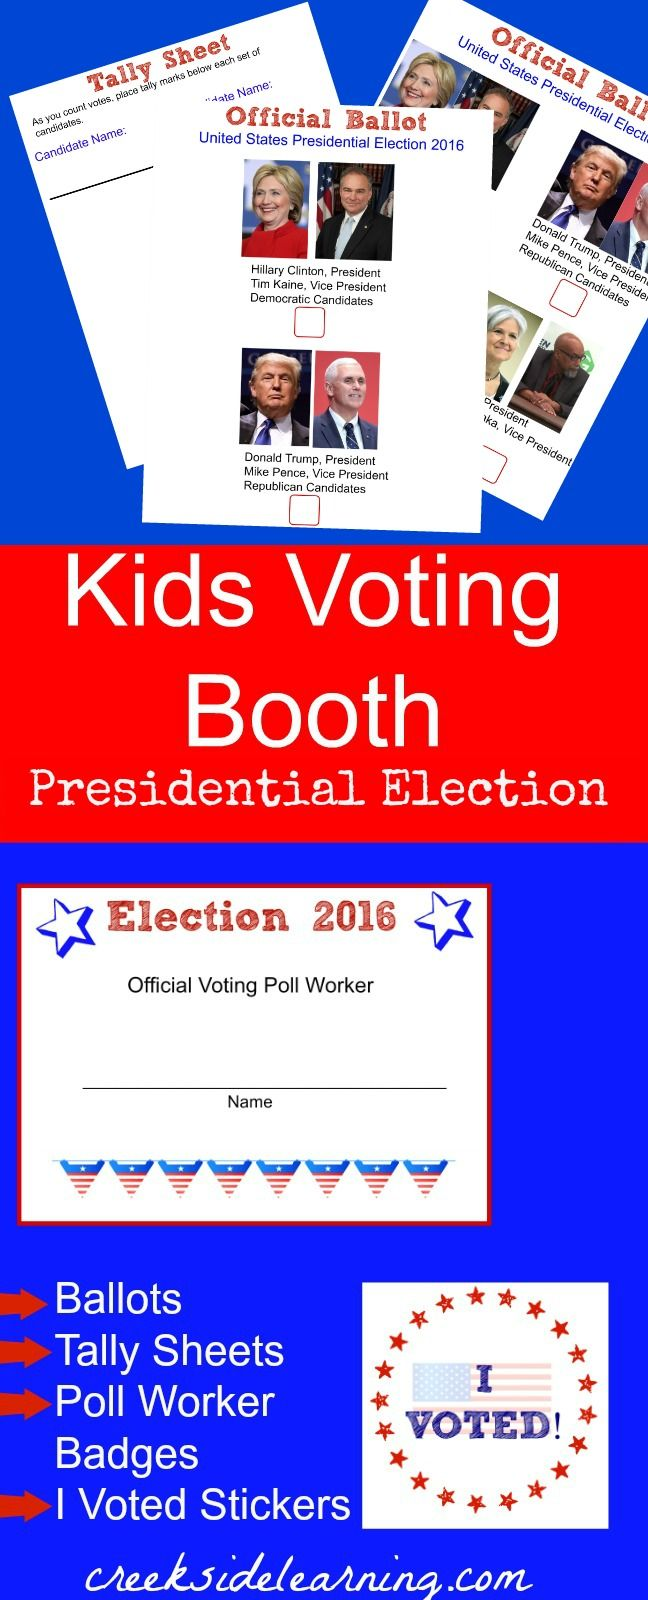 presidential election for kids | voting ballots, tally sheets, voter demographic collection, I VOTED stickers | free download voting activities for kids | elementary school, middle school | set up a kids voting booth with kid poll workers